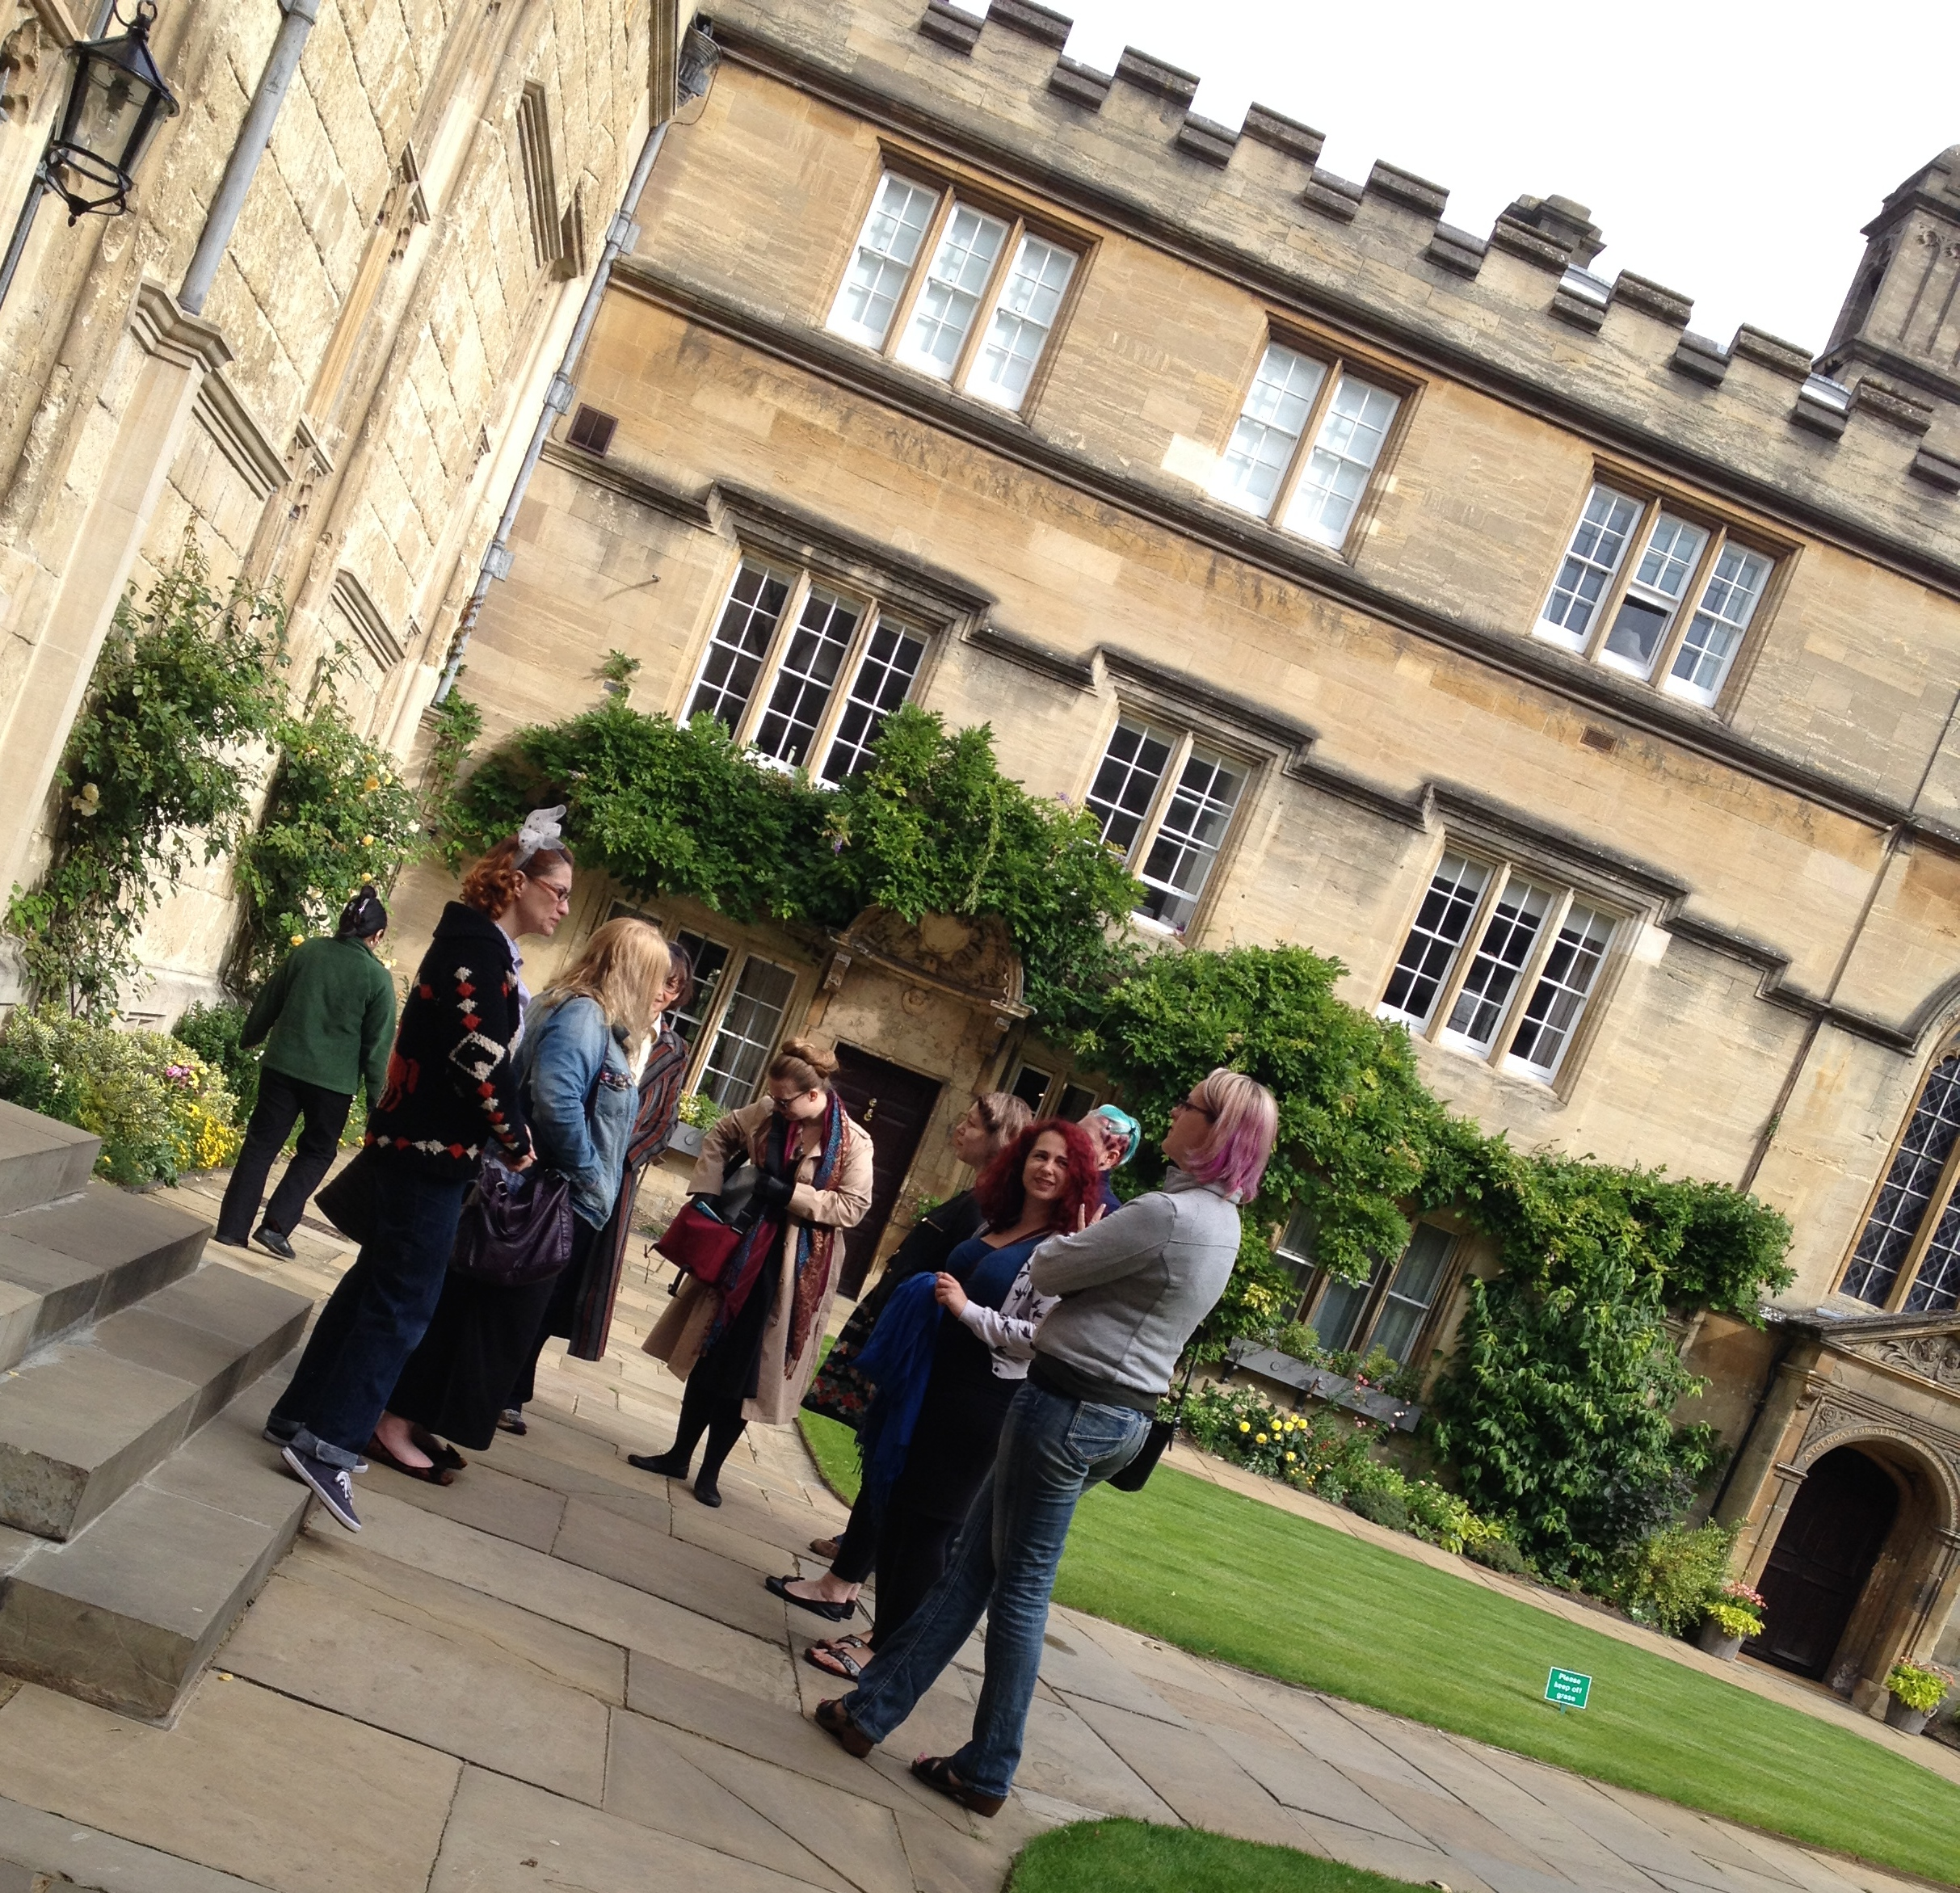 Corset Makers from around the world gather at Jesus College Oxford over August Bank Holiday.